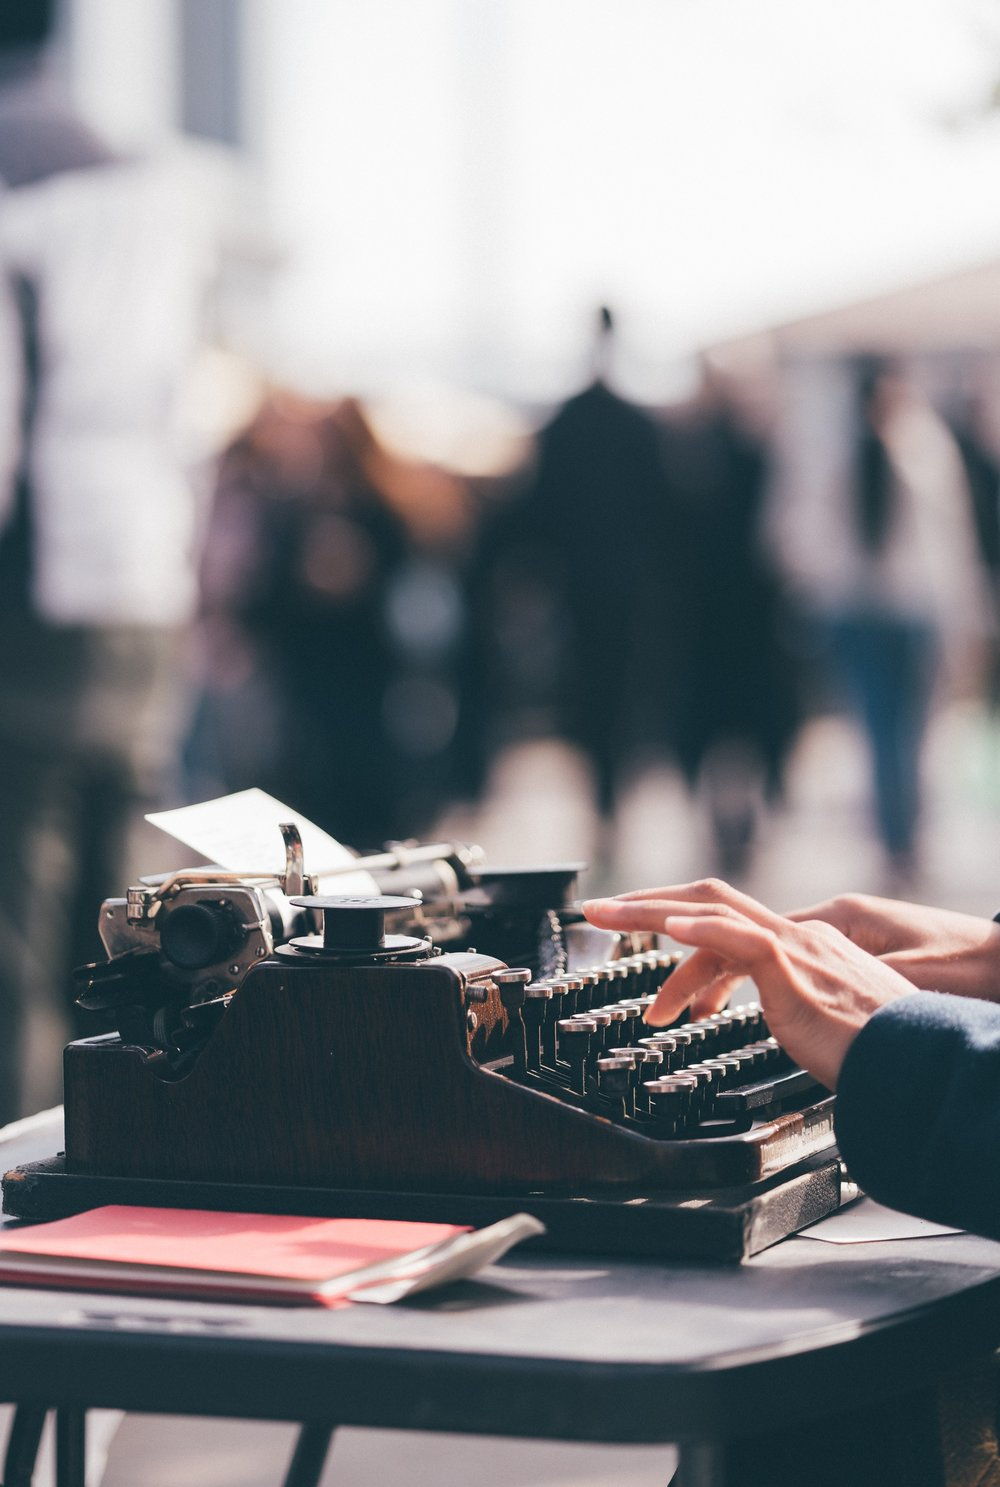 Editing might feel like literary castration (or perhaps literal castration), but if the end result is something iconic or salable, isn't it all worth it? And at the end of the day, you, the writer, get credit for the story. The editor is just your lovely assistant. It's always your story.